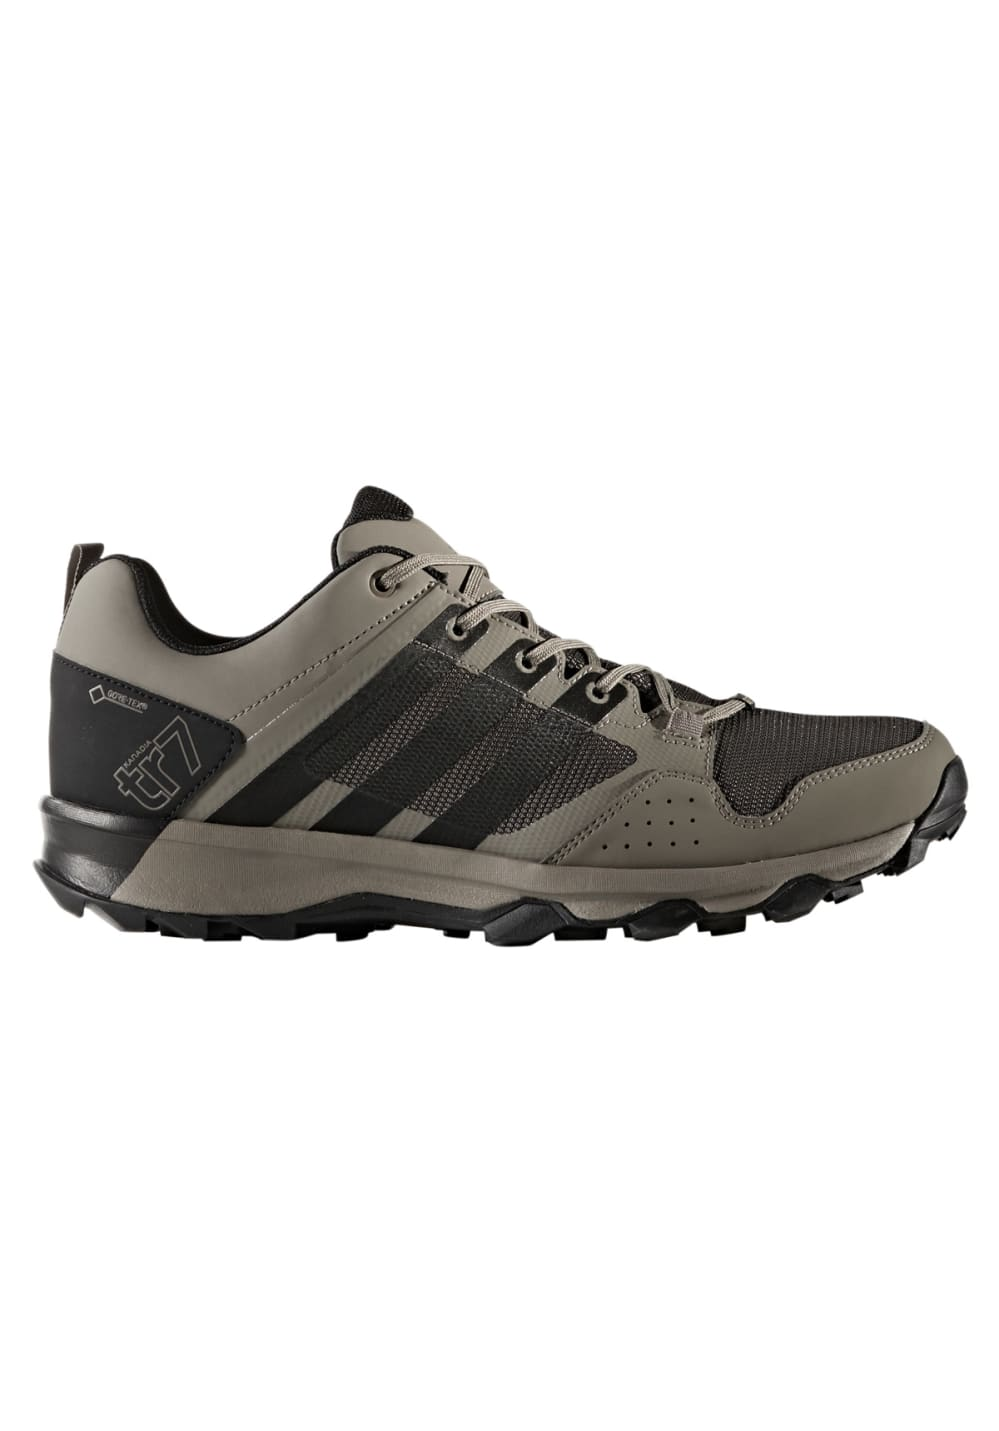 Trail Gtx Pour Kanadia Adidas Marron Running Chaussures 7 Homme b7gyYf6